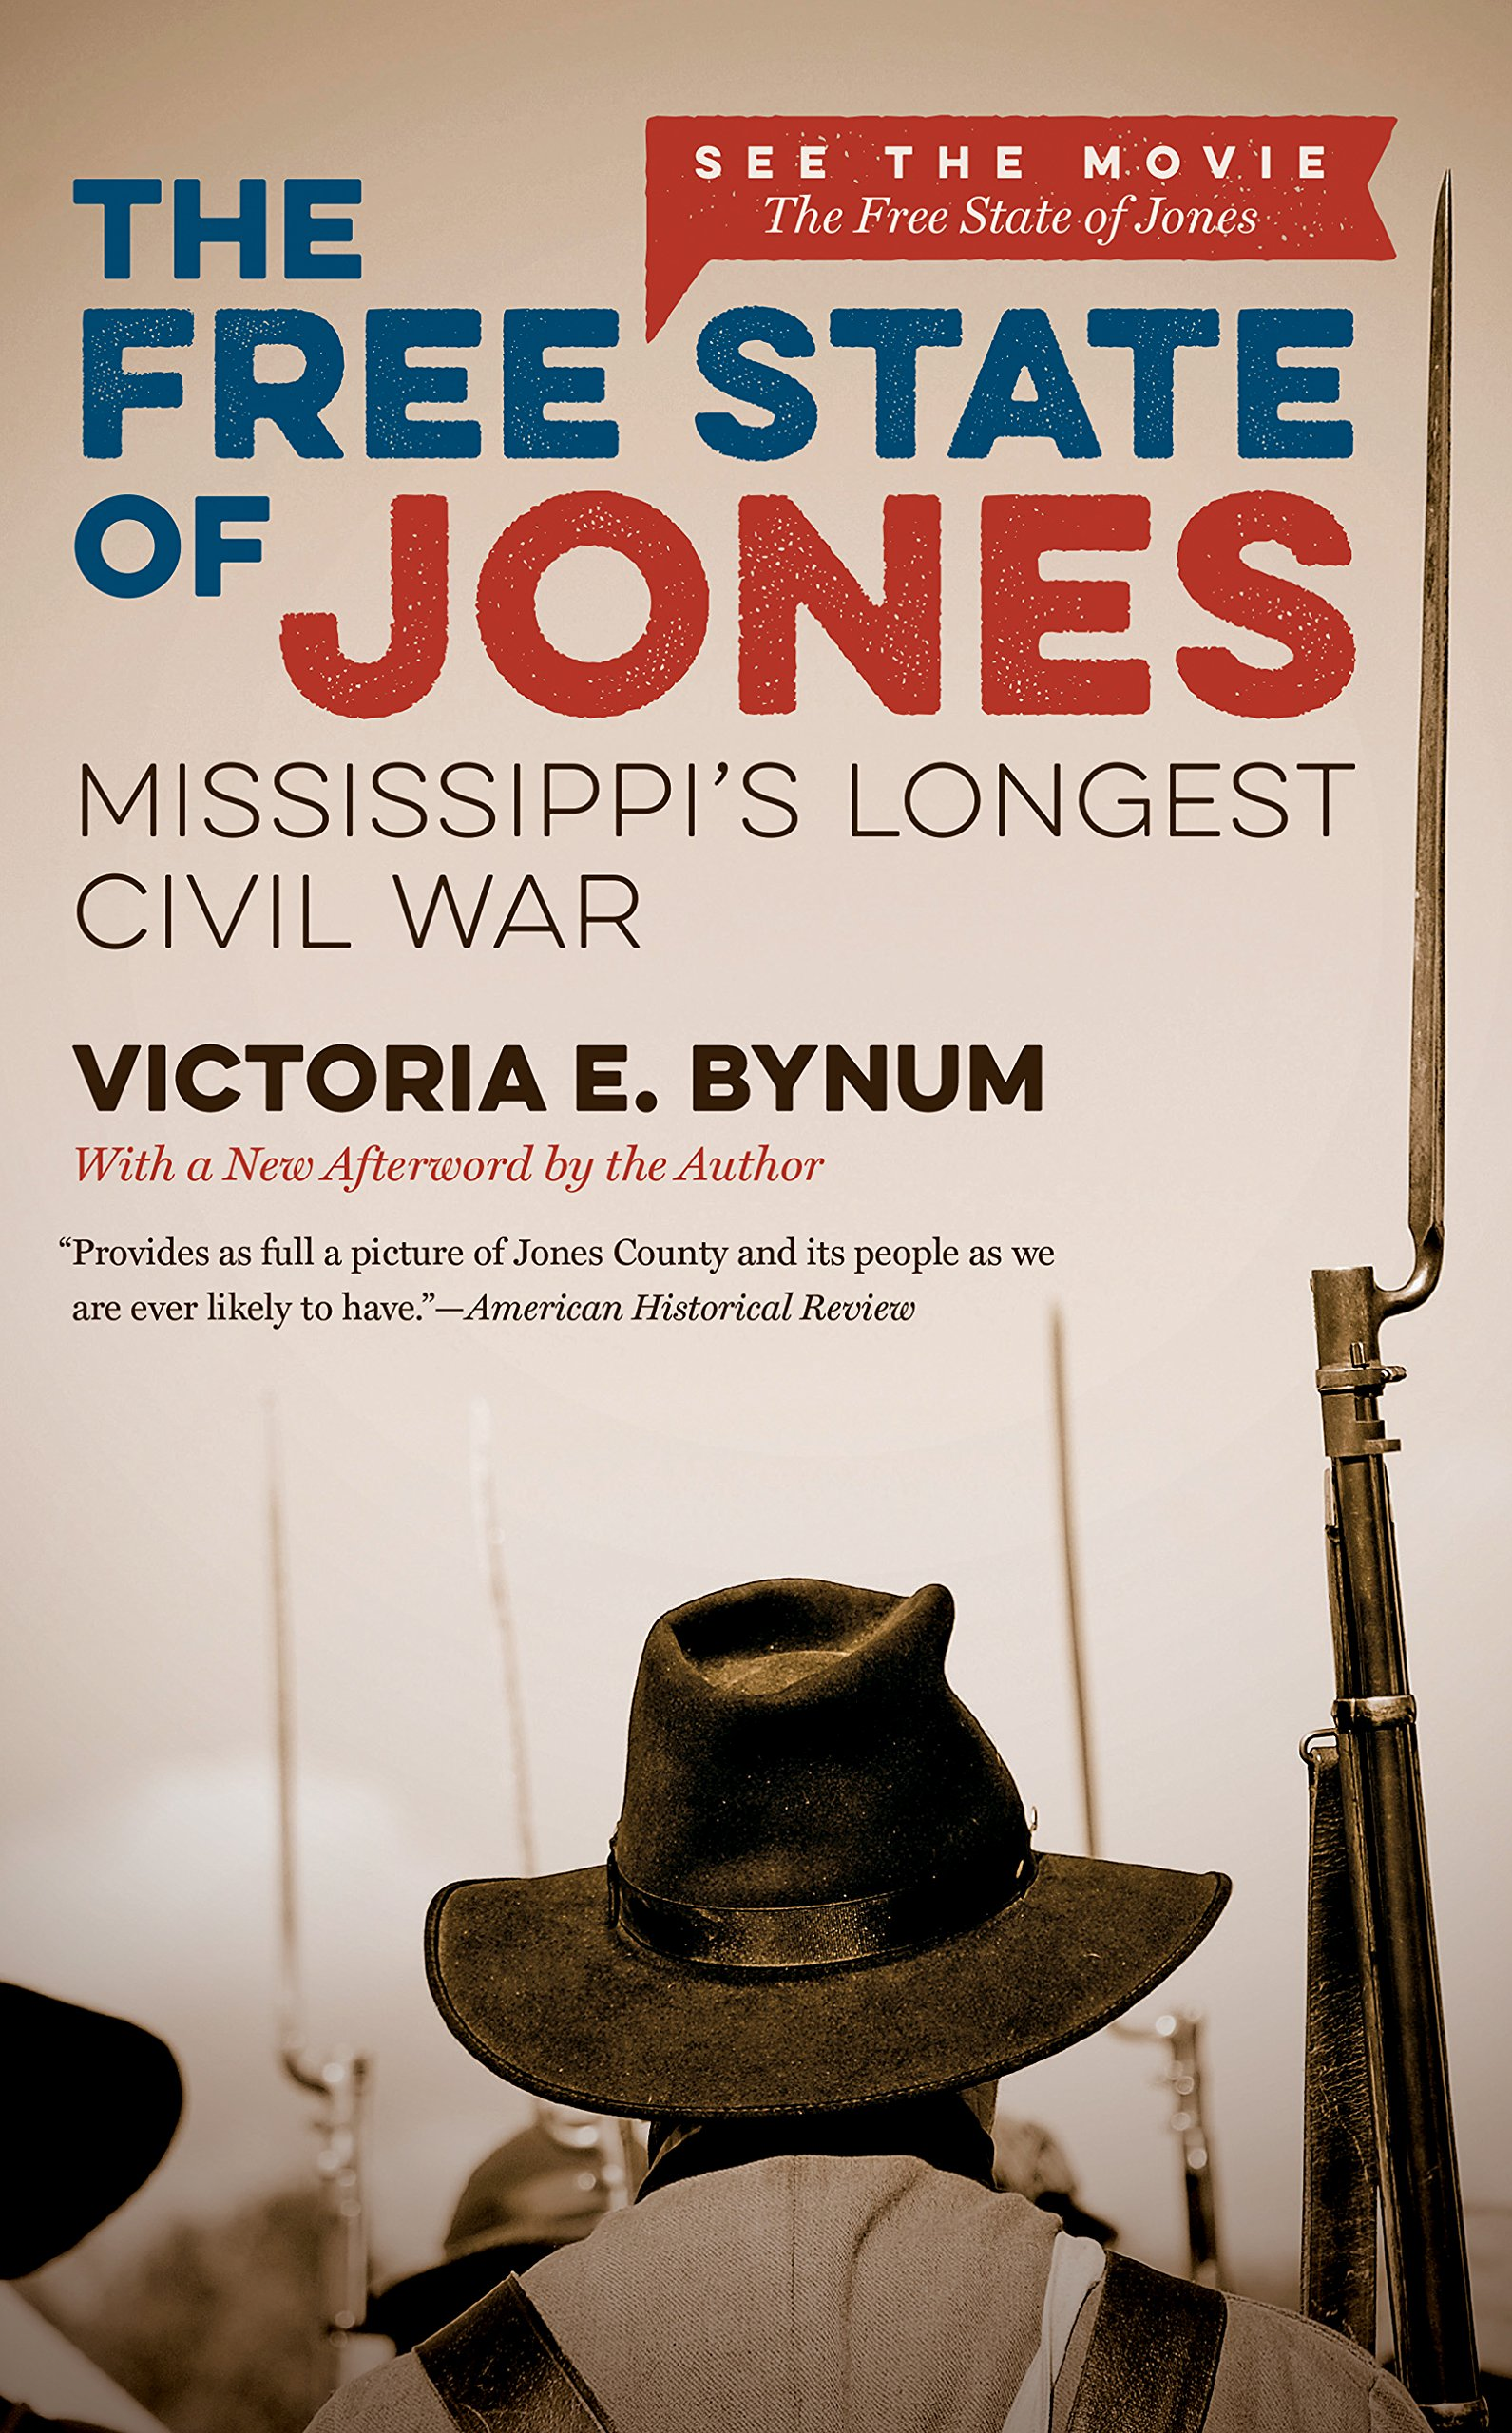 The Free State Of Jones Movie Edition Mississippis Longest Civil War Fred W Morrison Series In Southern Studies Victoria E Bynum 9781469627052